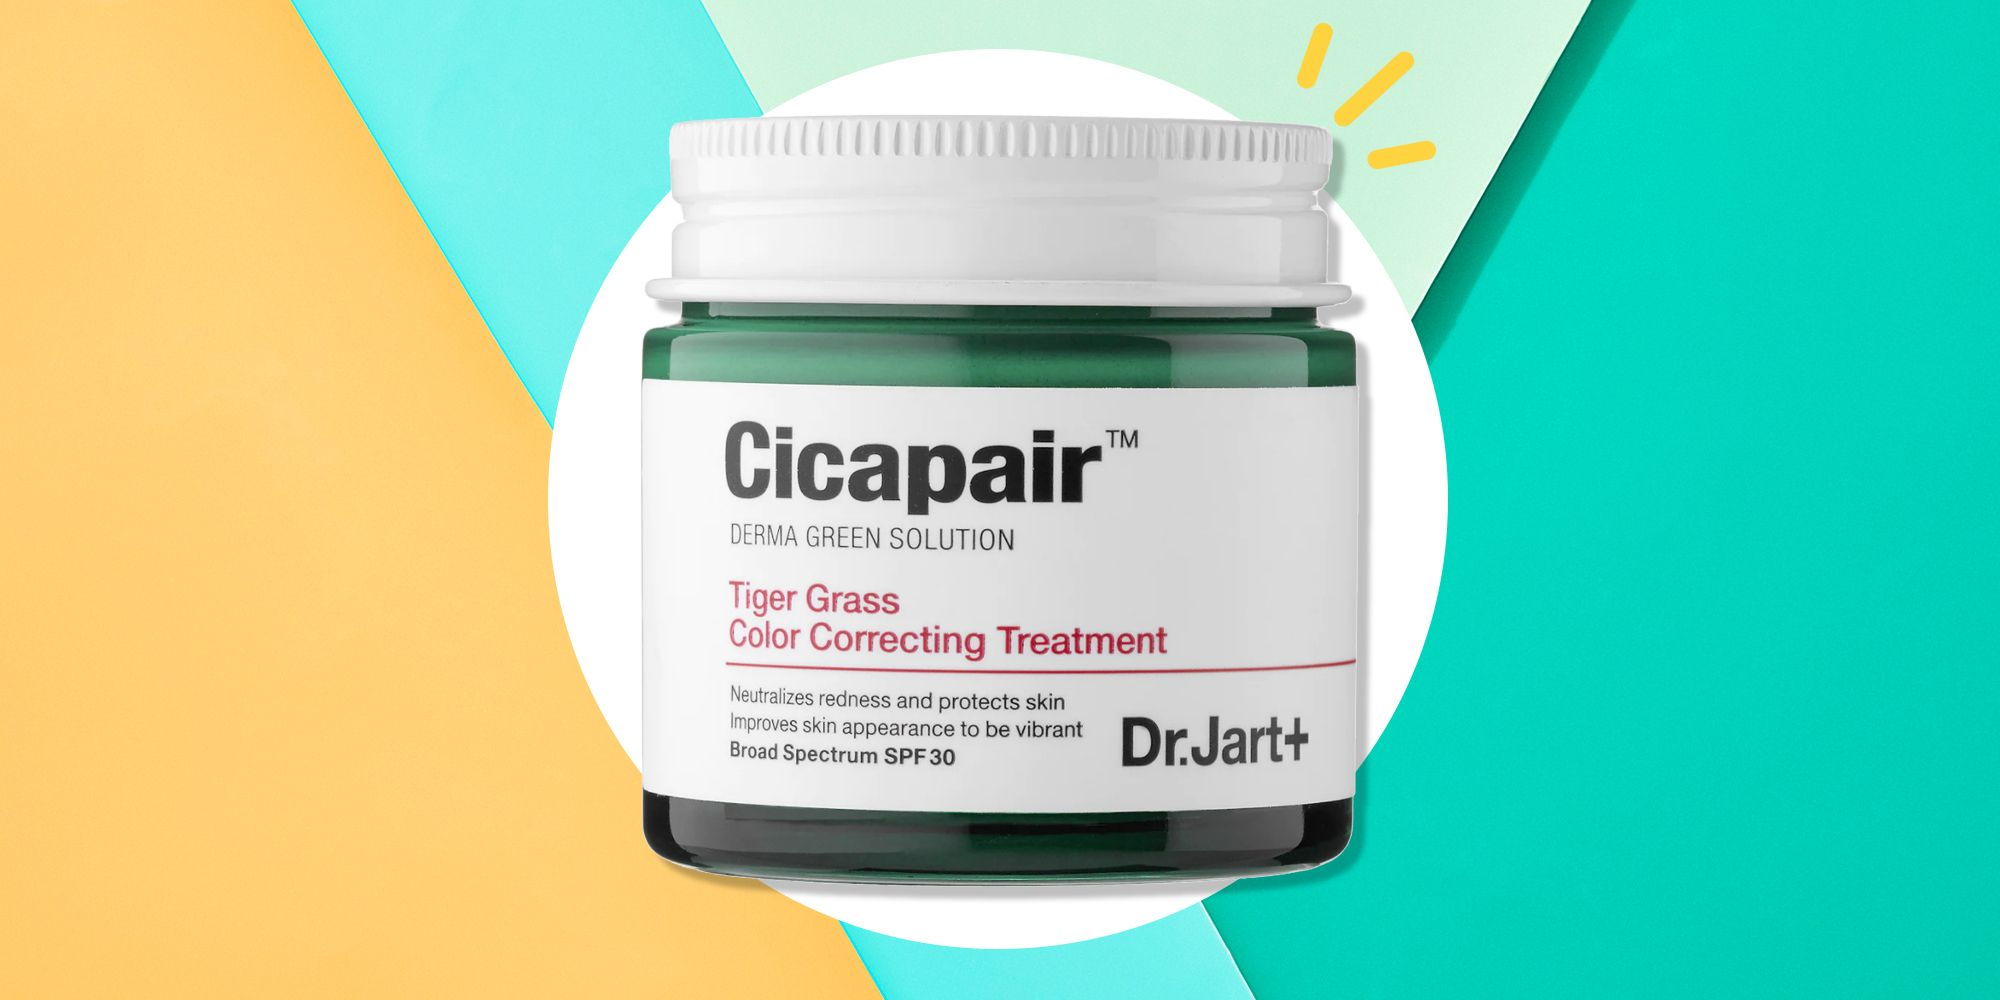 I Tried The TikTok-Famous Cicapair Tiger Grass Color Corrector—Here's My Honest Review